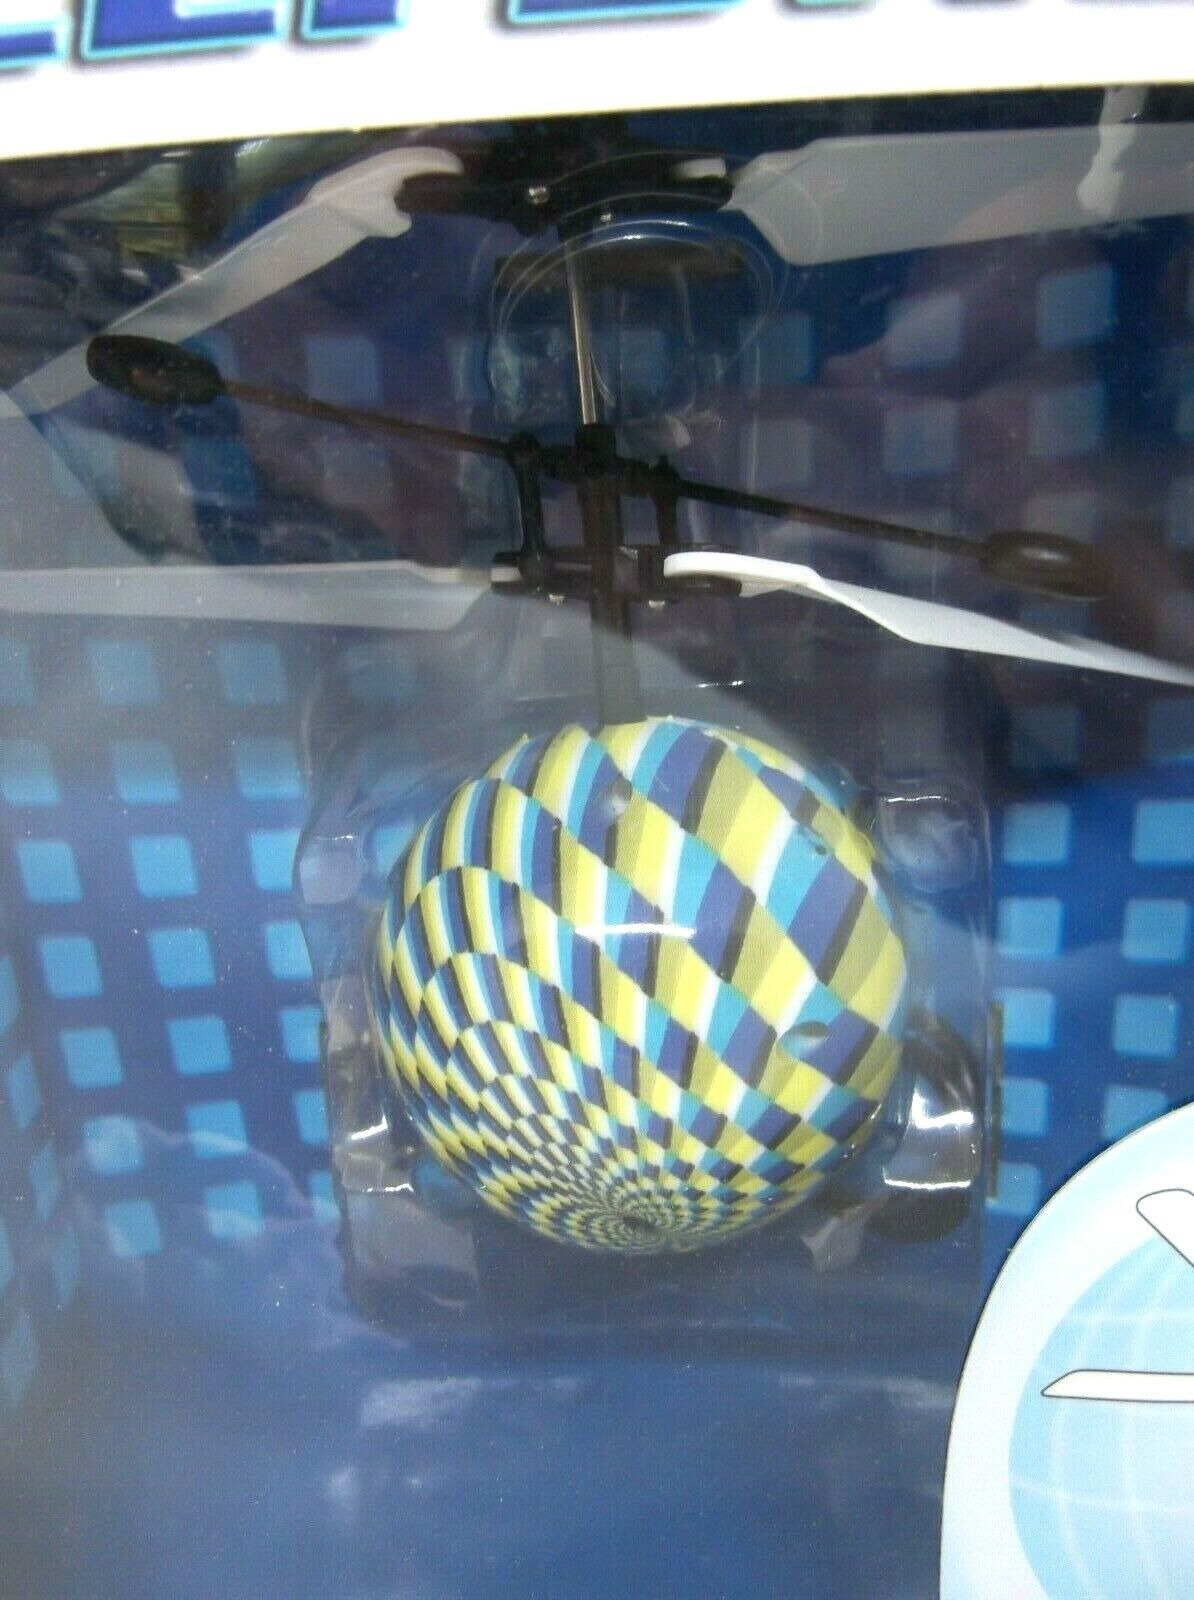 Heli Ball Powerful Levitating Sphere Charge Using USB Indoor Use Ages 10  - $10.50